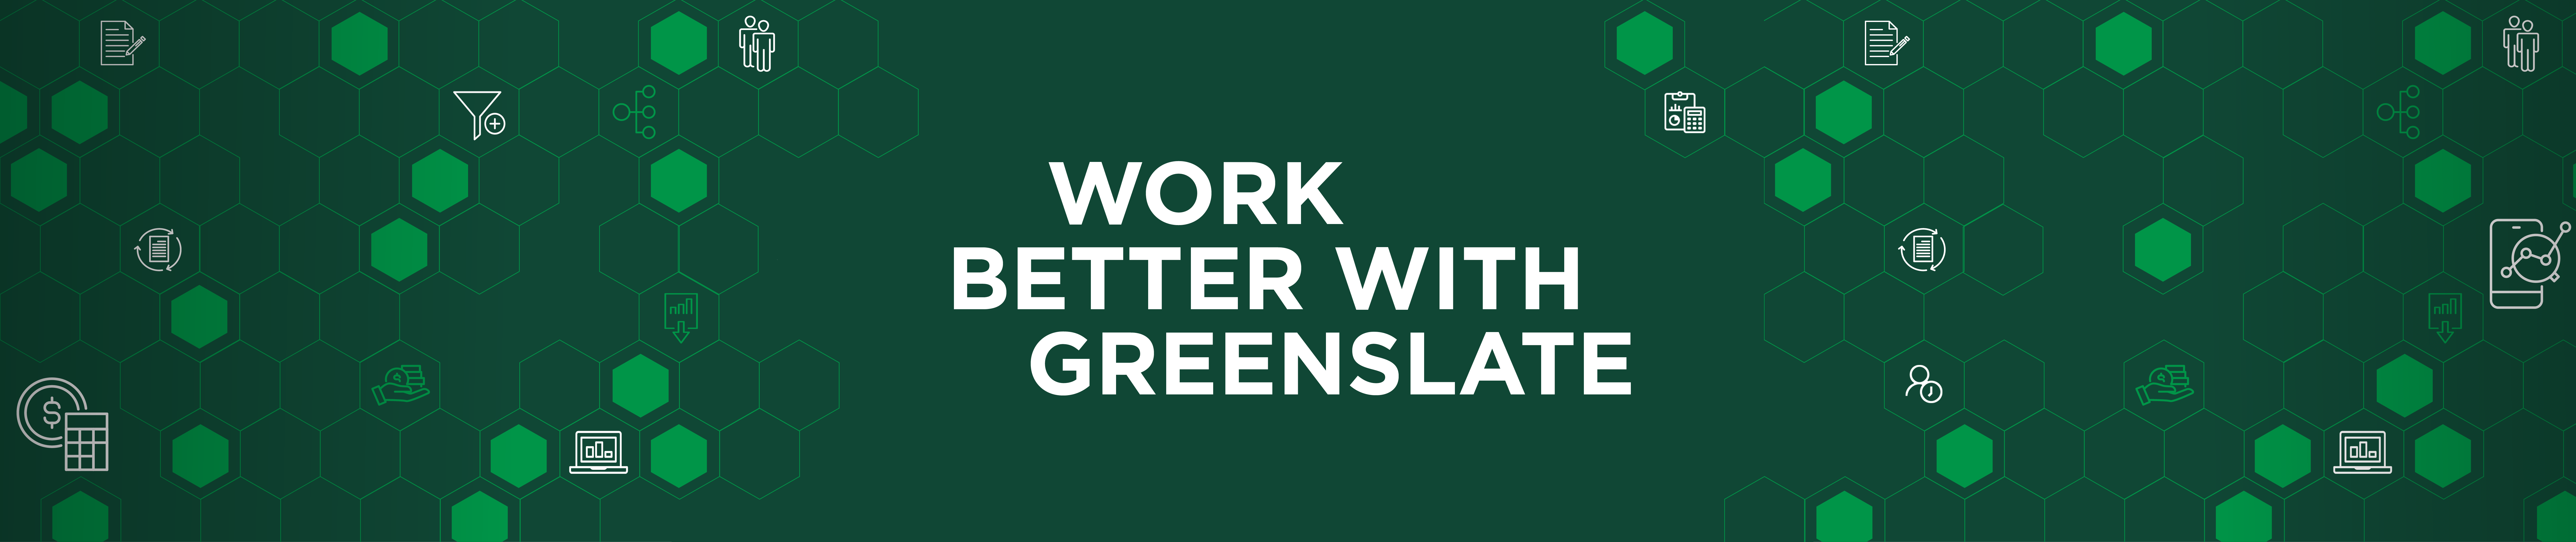 Work Better With GreenSlate Banner